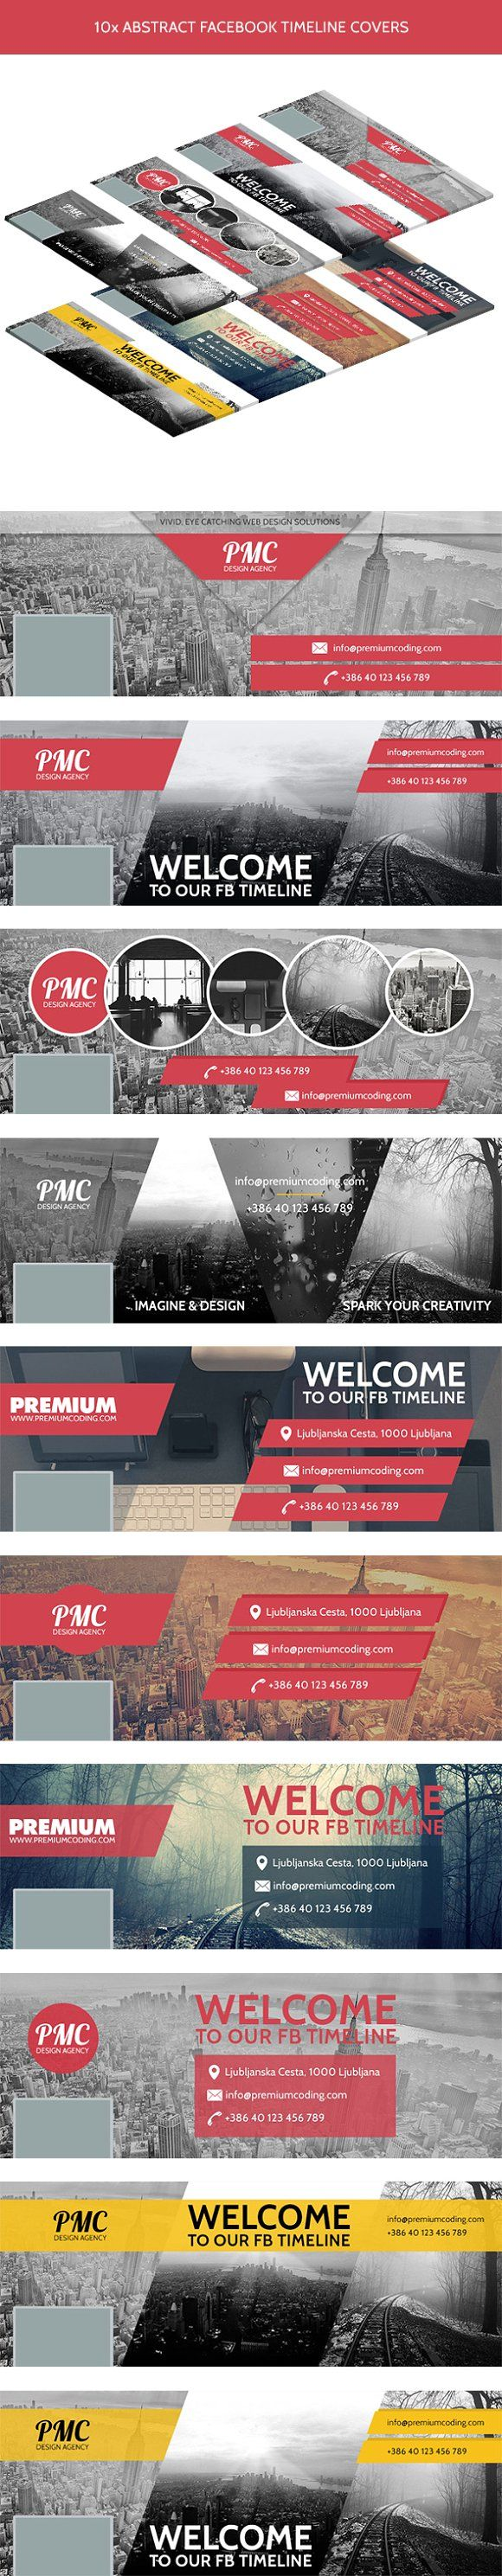 10 Abstract Timeline Cover Templates by PremiumCoding on @creativemarket